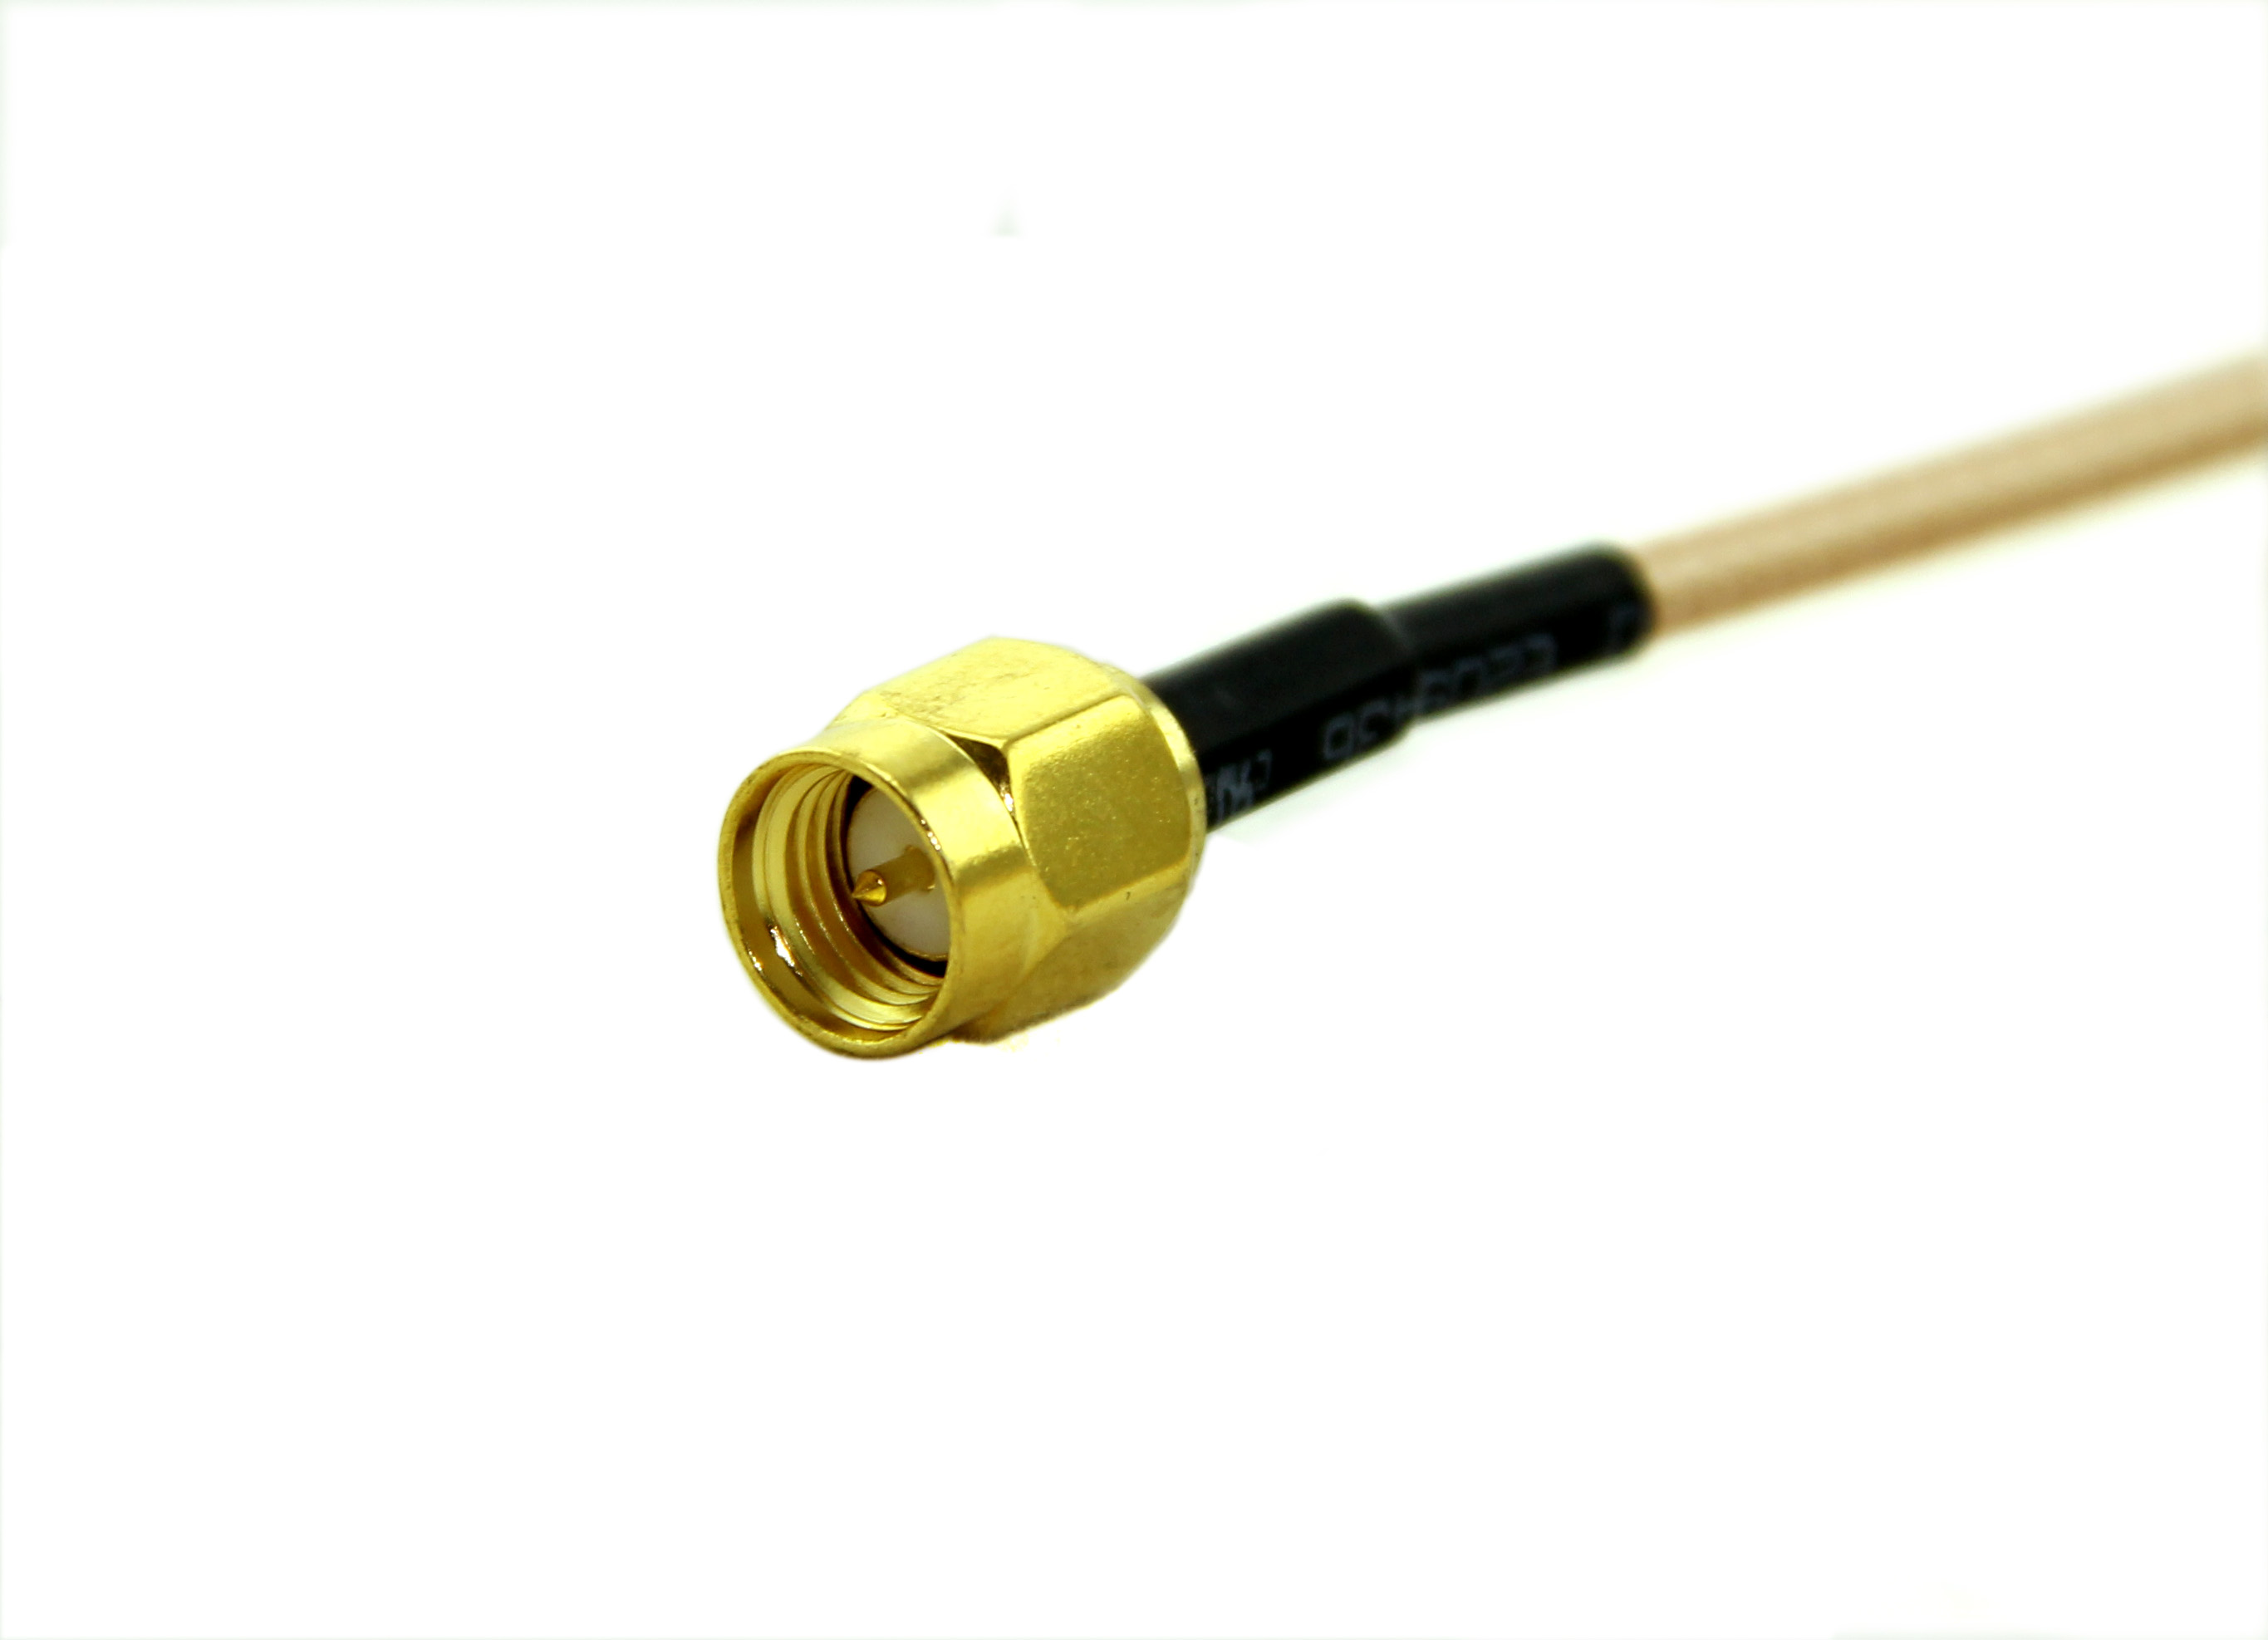 50cm length - SMA male to SMA male plug pigtail cable RG316